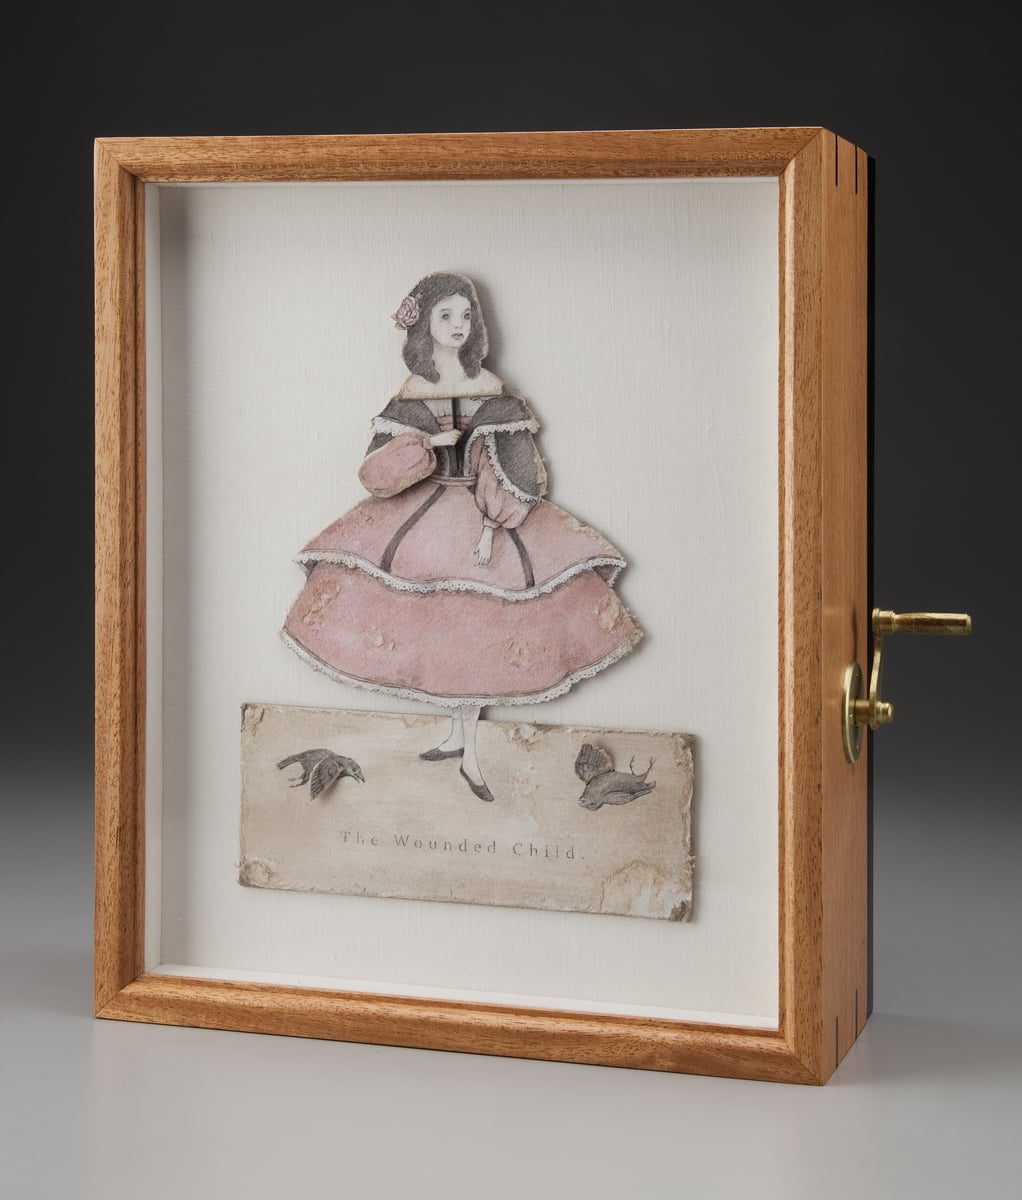 """The Wounded Child . Automata. 2013. Paper, Colored pencil, Acrylic, Linen, Cherry, Ebony, Brass, Self-fabricated mechanisms, Hardware. 13 ½"""" h x 11"""" w x 4 ¾ d."""